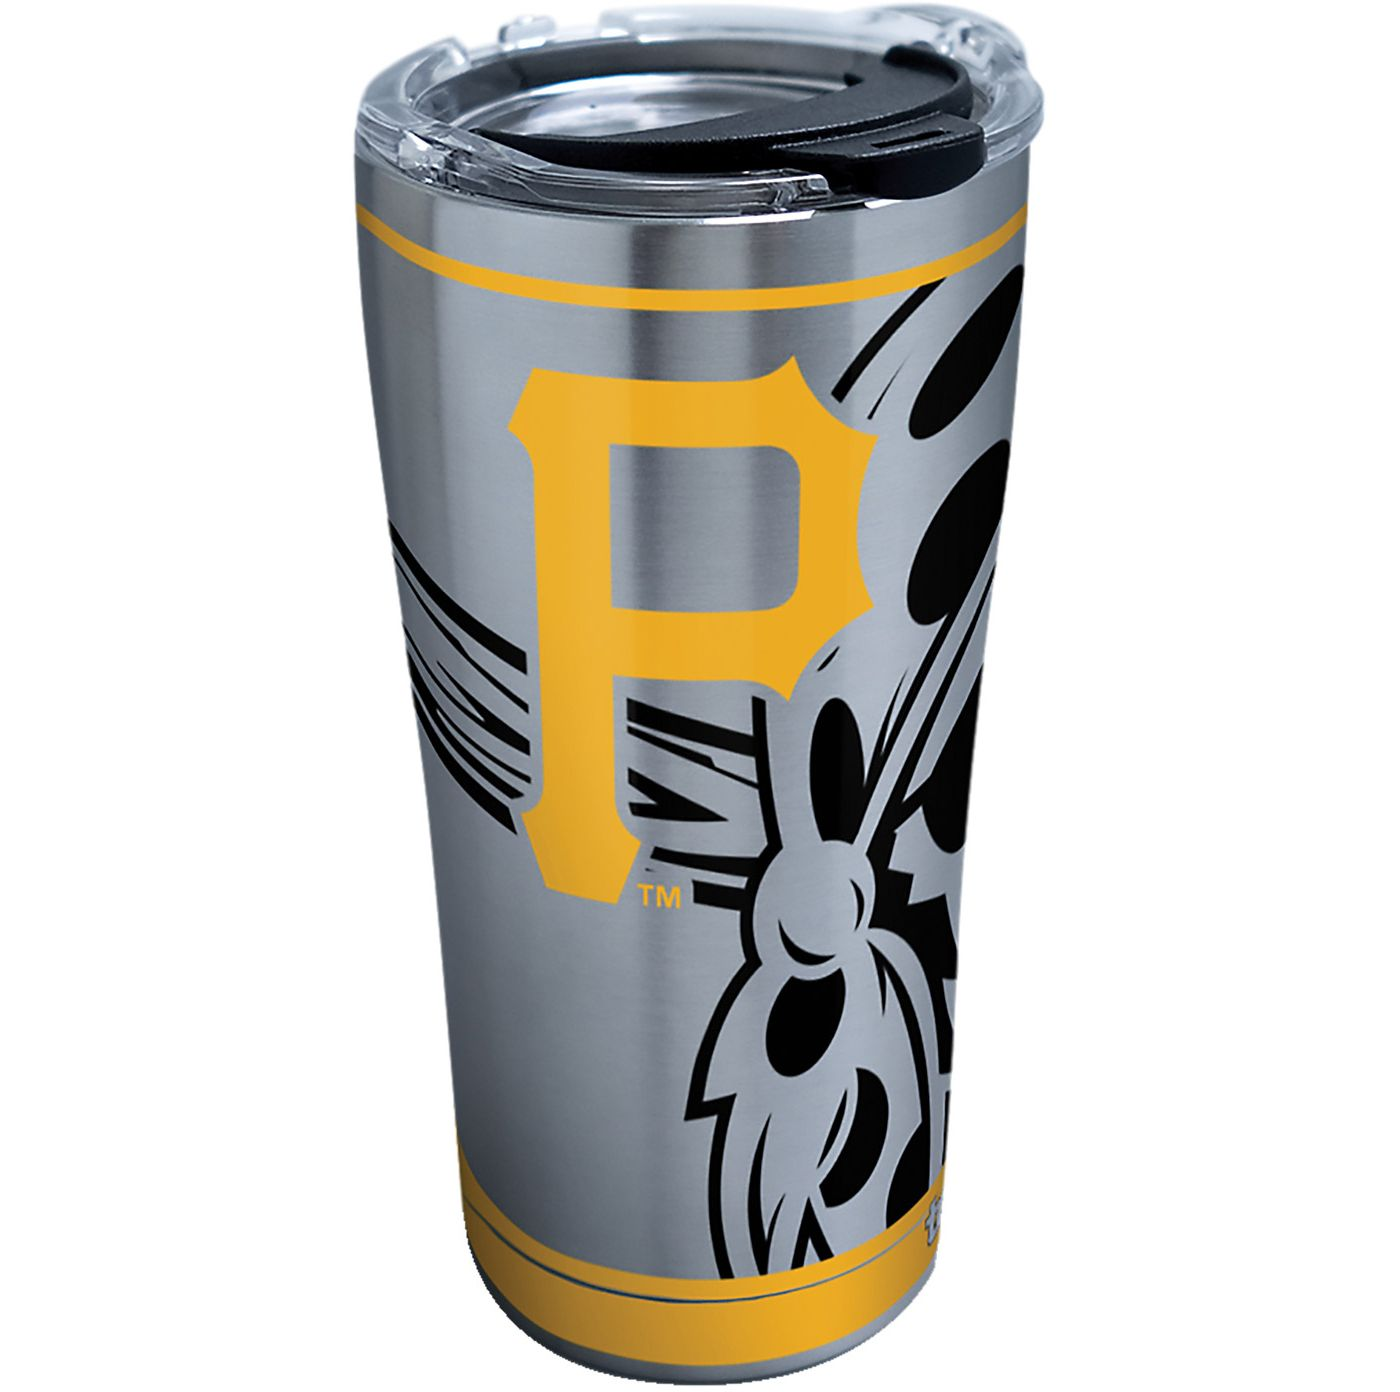 Tervis Pittsburgh Pirates 20oz. Stainless Steel Tumbler